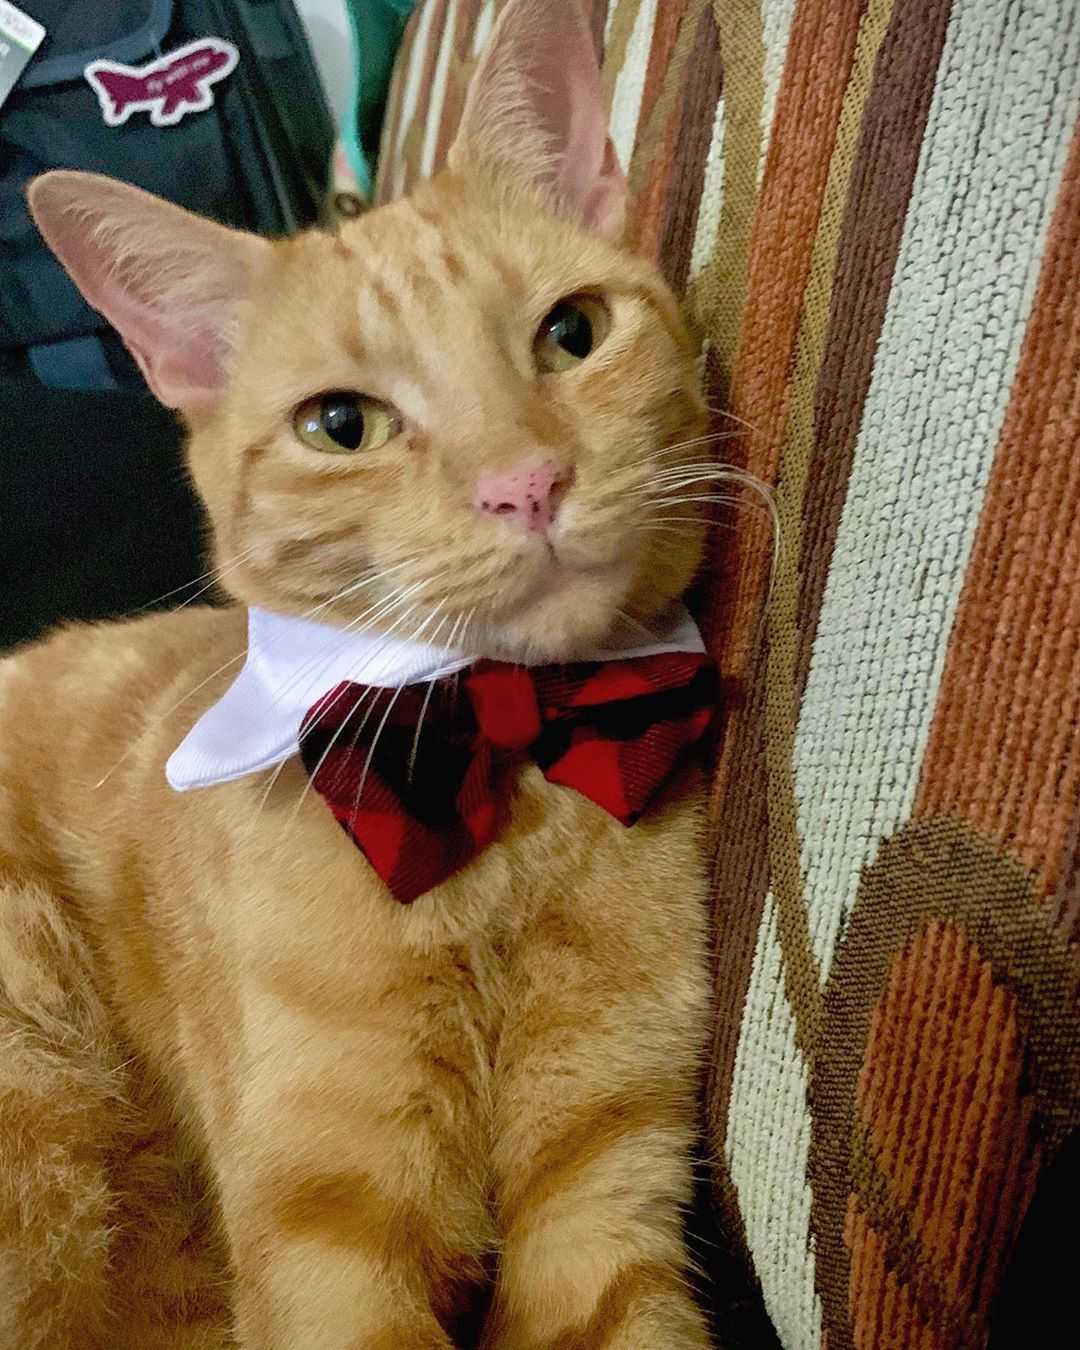 Vean que elegante me veo con este corbatín de @petcomexico  ya estoy listo para las festividades me invitan a sus fiestas  ////// Look how elegant I look with this bow tie from @petco  Im ready to party! Please invite me to your festivities  ////// #cat #cats #catsofinstagram #cats_of_instagram #cats_of_world #catstagram #cats_of_instworld #cats_of_day #gato #gatos #gatosdeinstagram #gatosgraciosos #cute #fun #happy #petco #petcomx #favorite #guapo #handsome #thinking #holidays #meaow #miau #cat